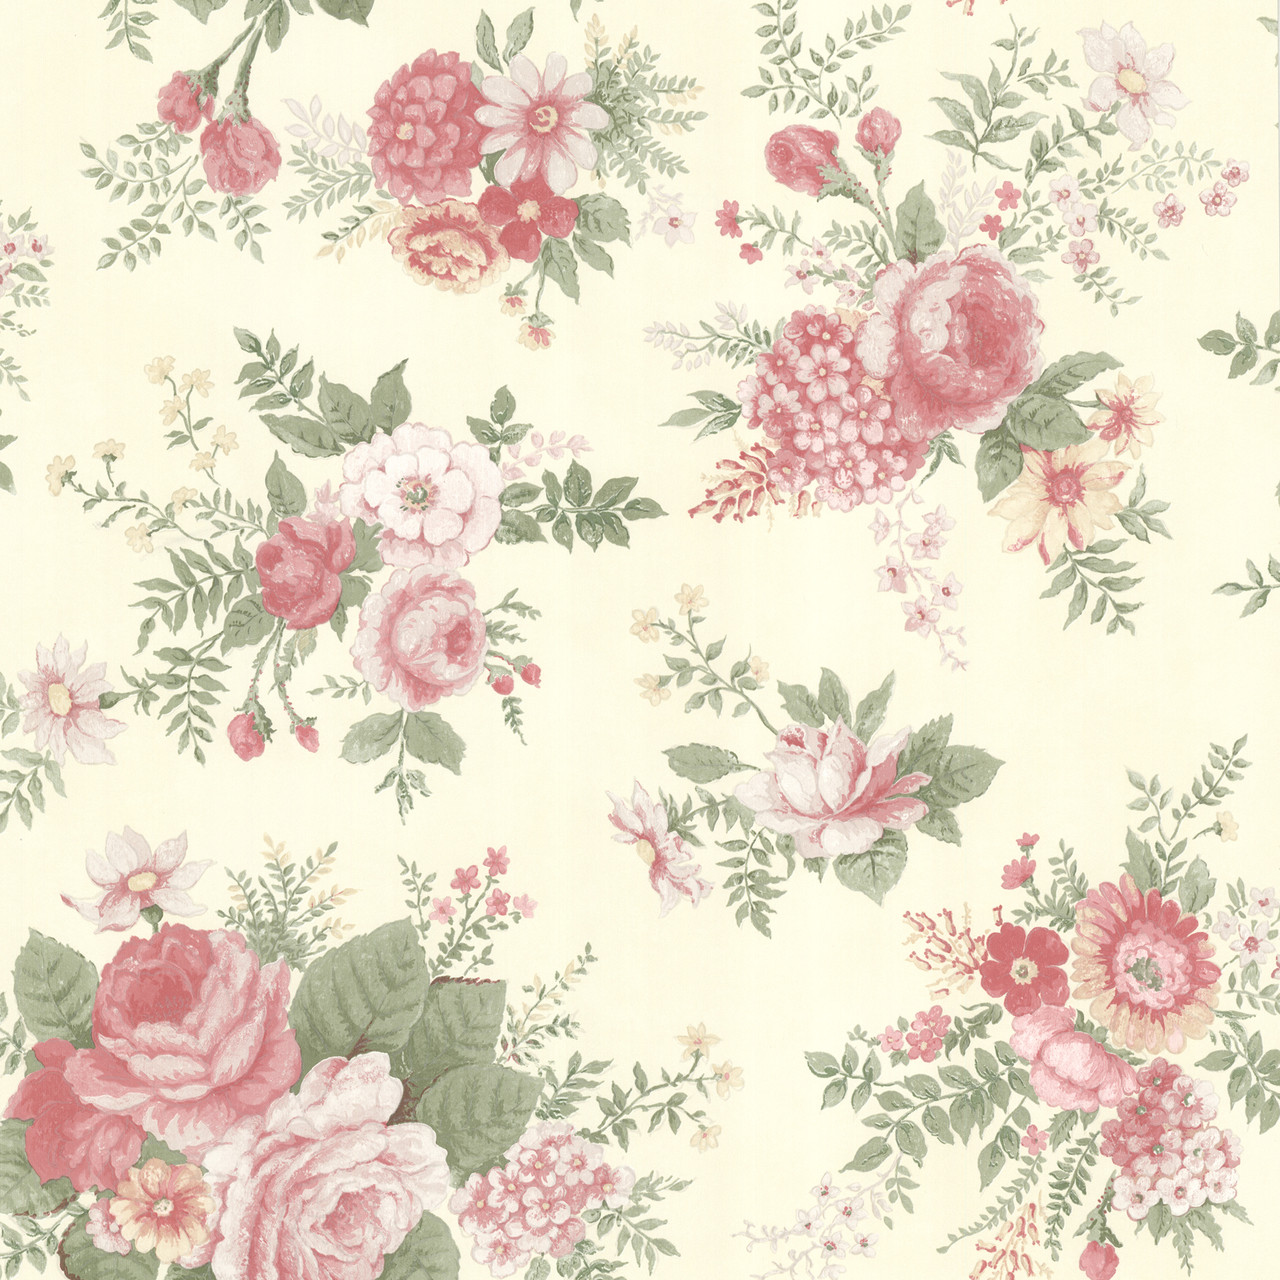 Buy Rosa Pink Floral Medley 302 66855 By Brewster Wallcovering